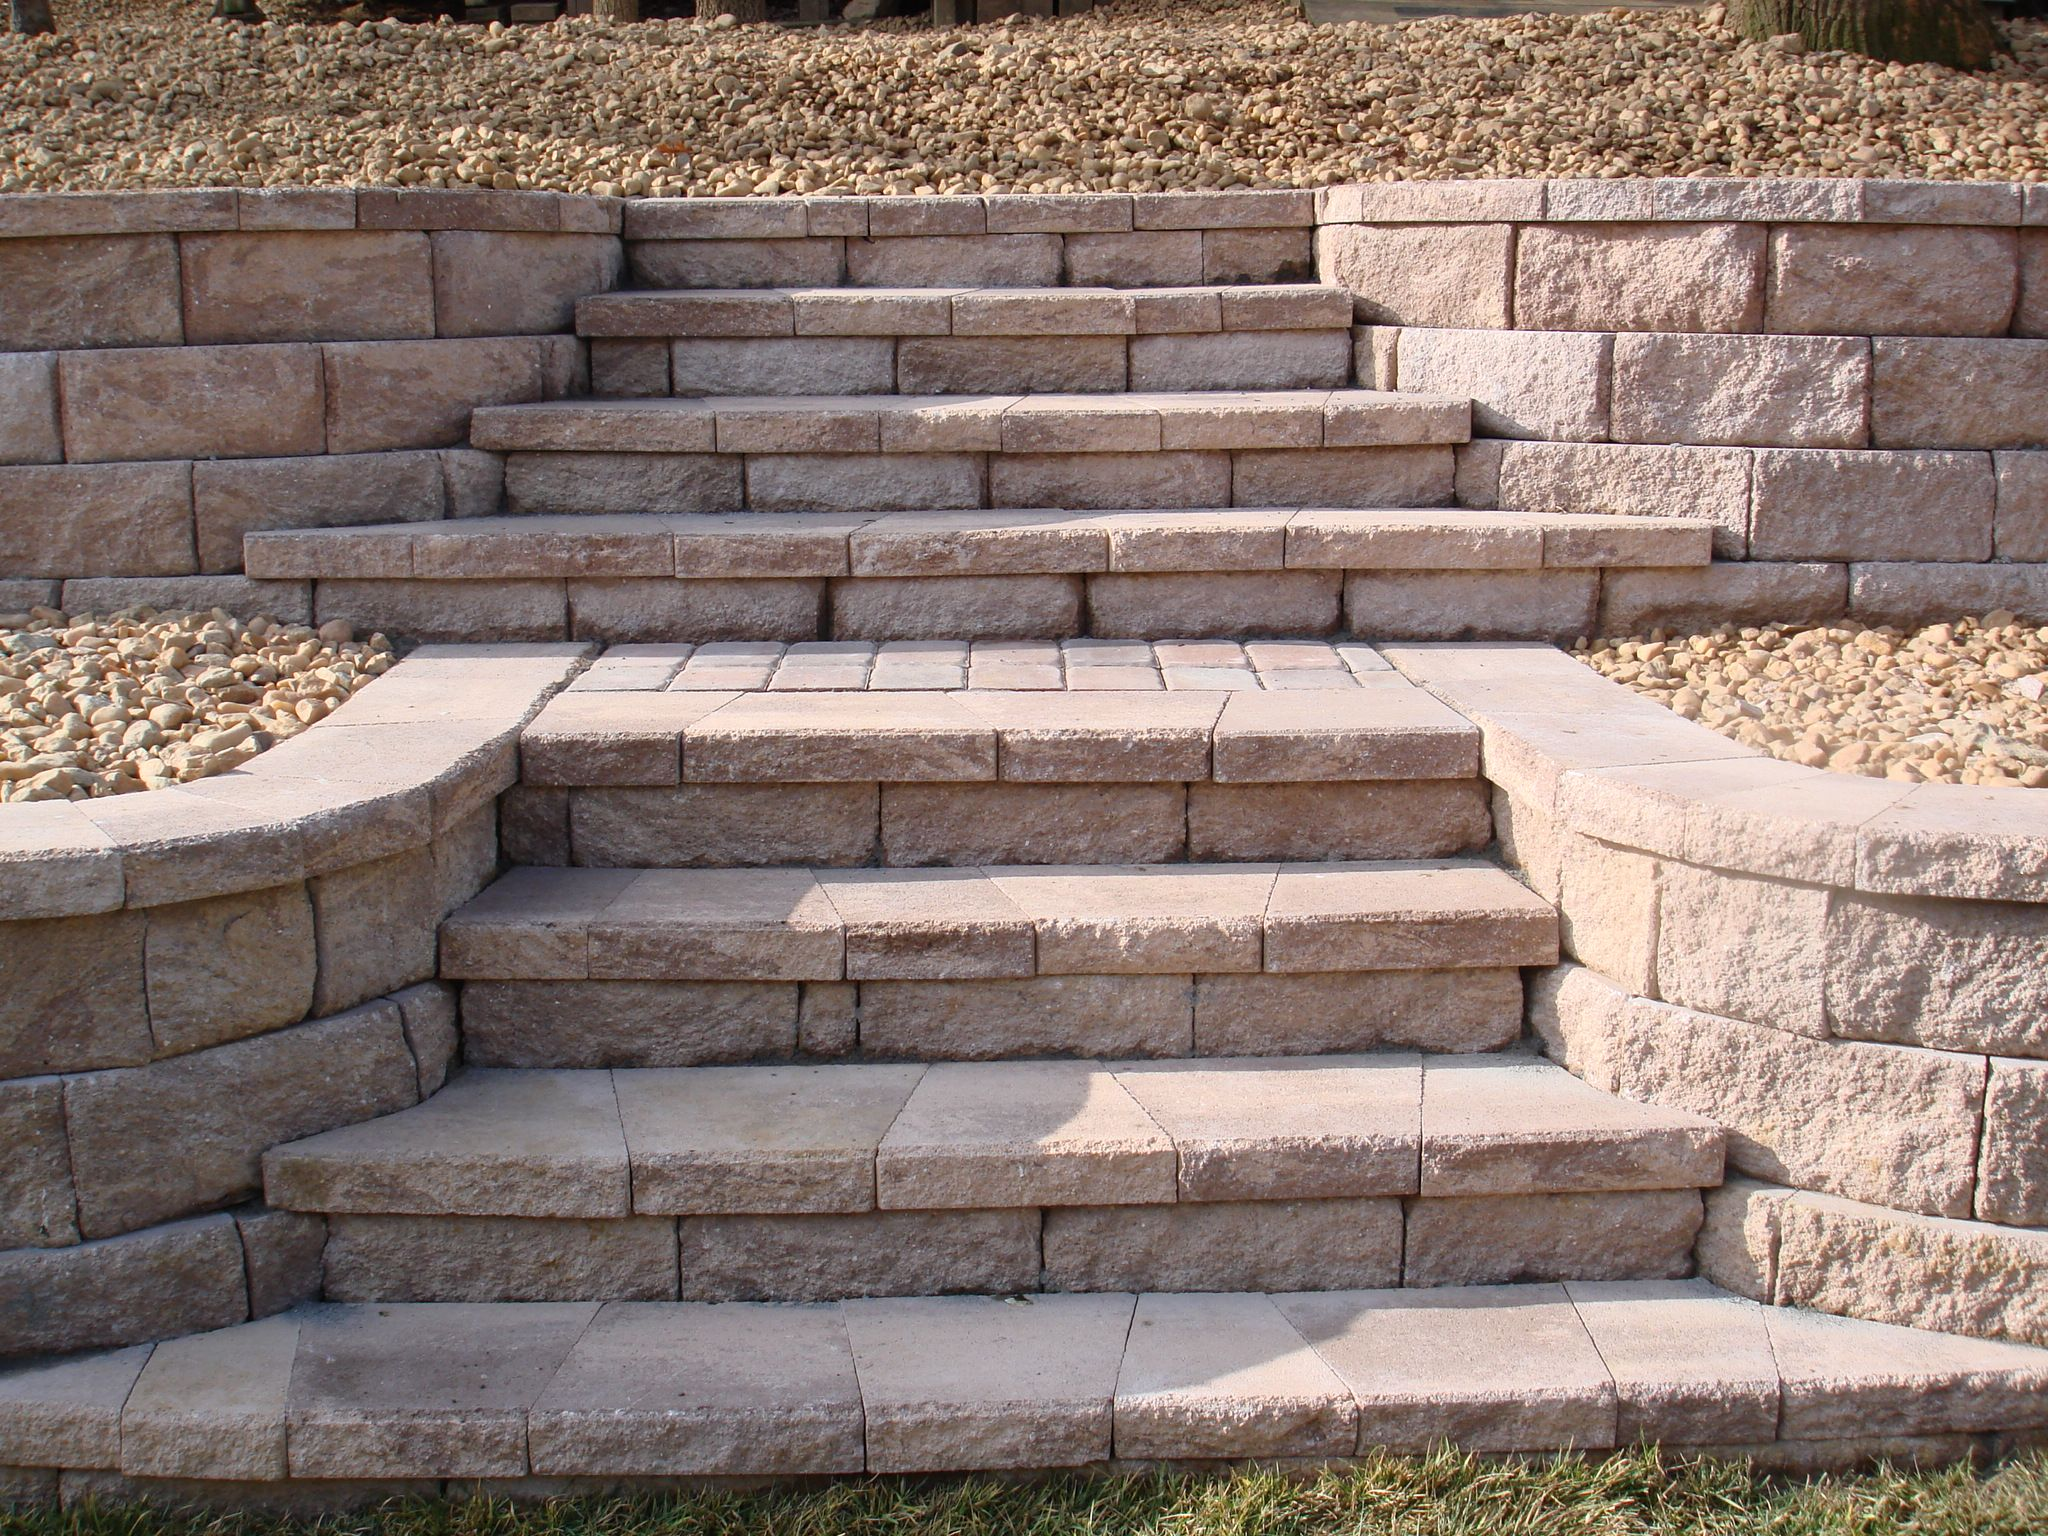 Landscaping Wall Steps : Retaining wall stairs with stone steps fredericksburg